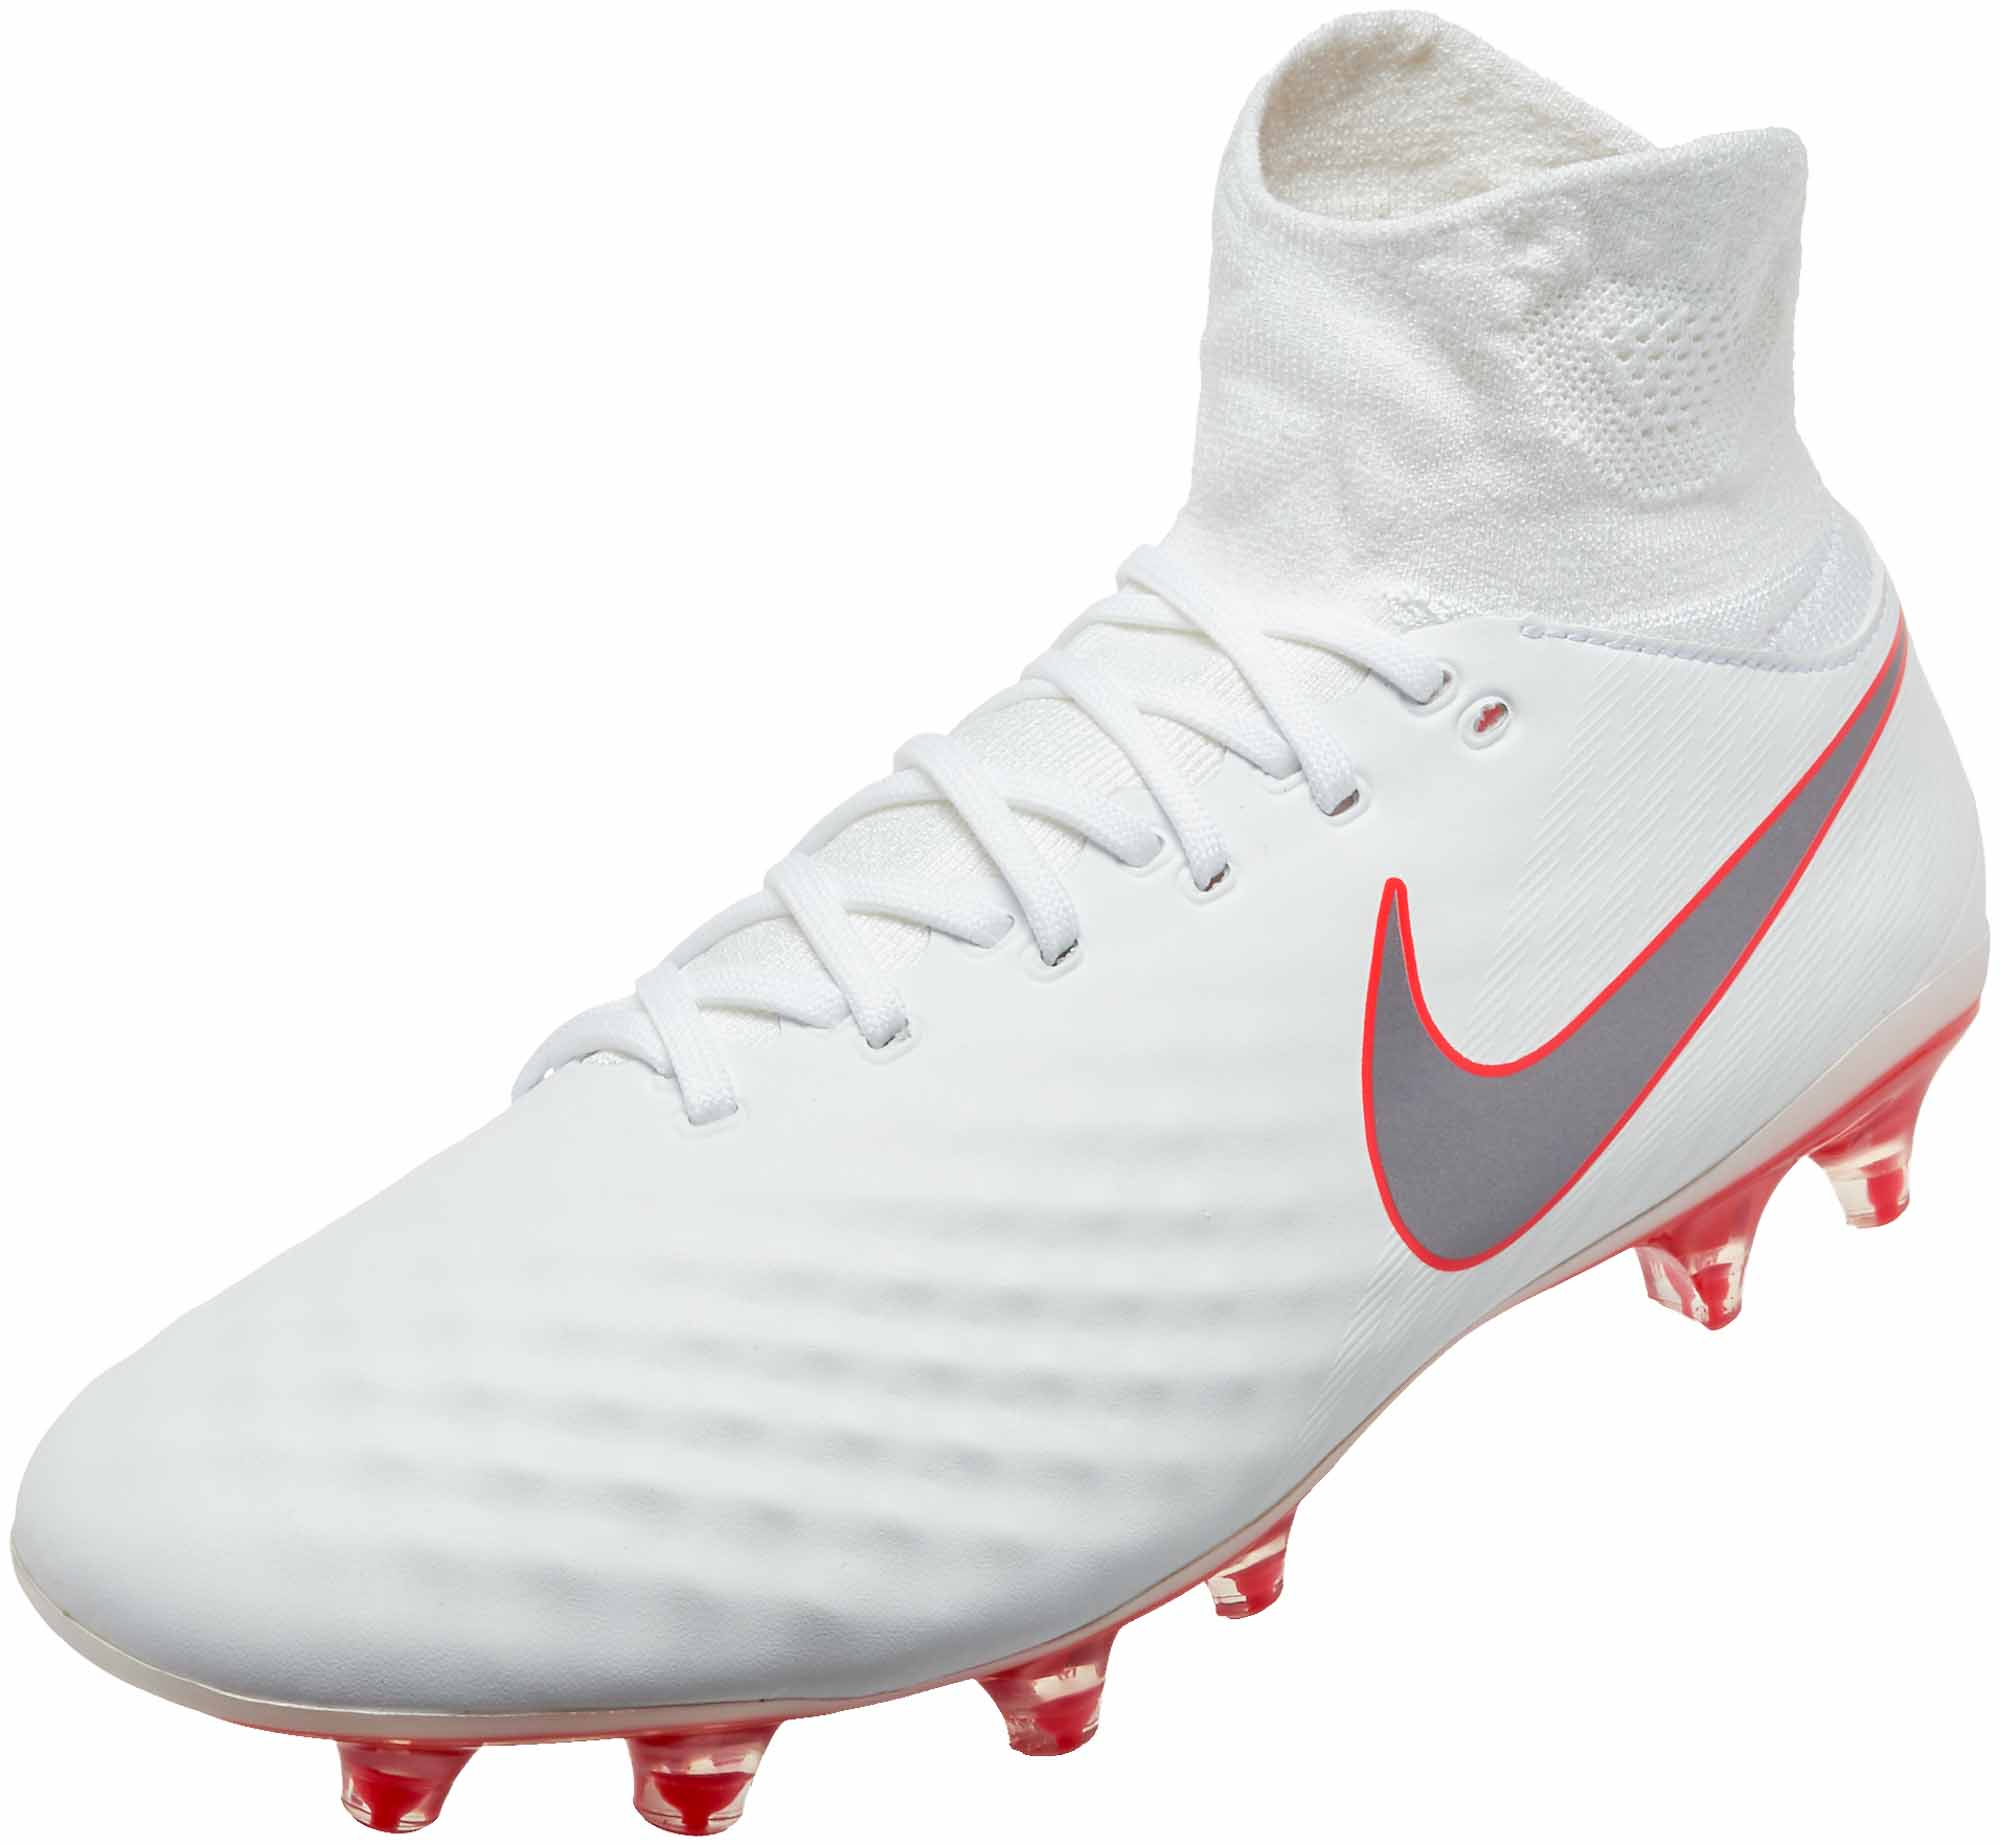 magista obra ii price